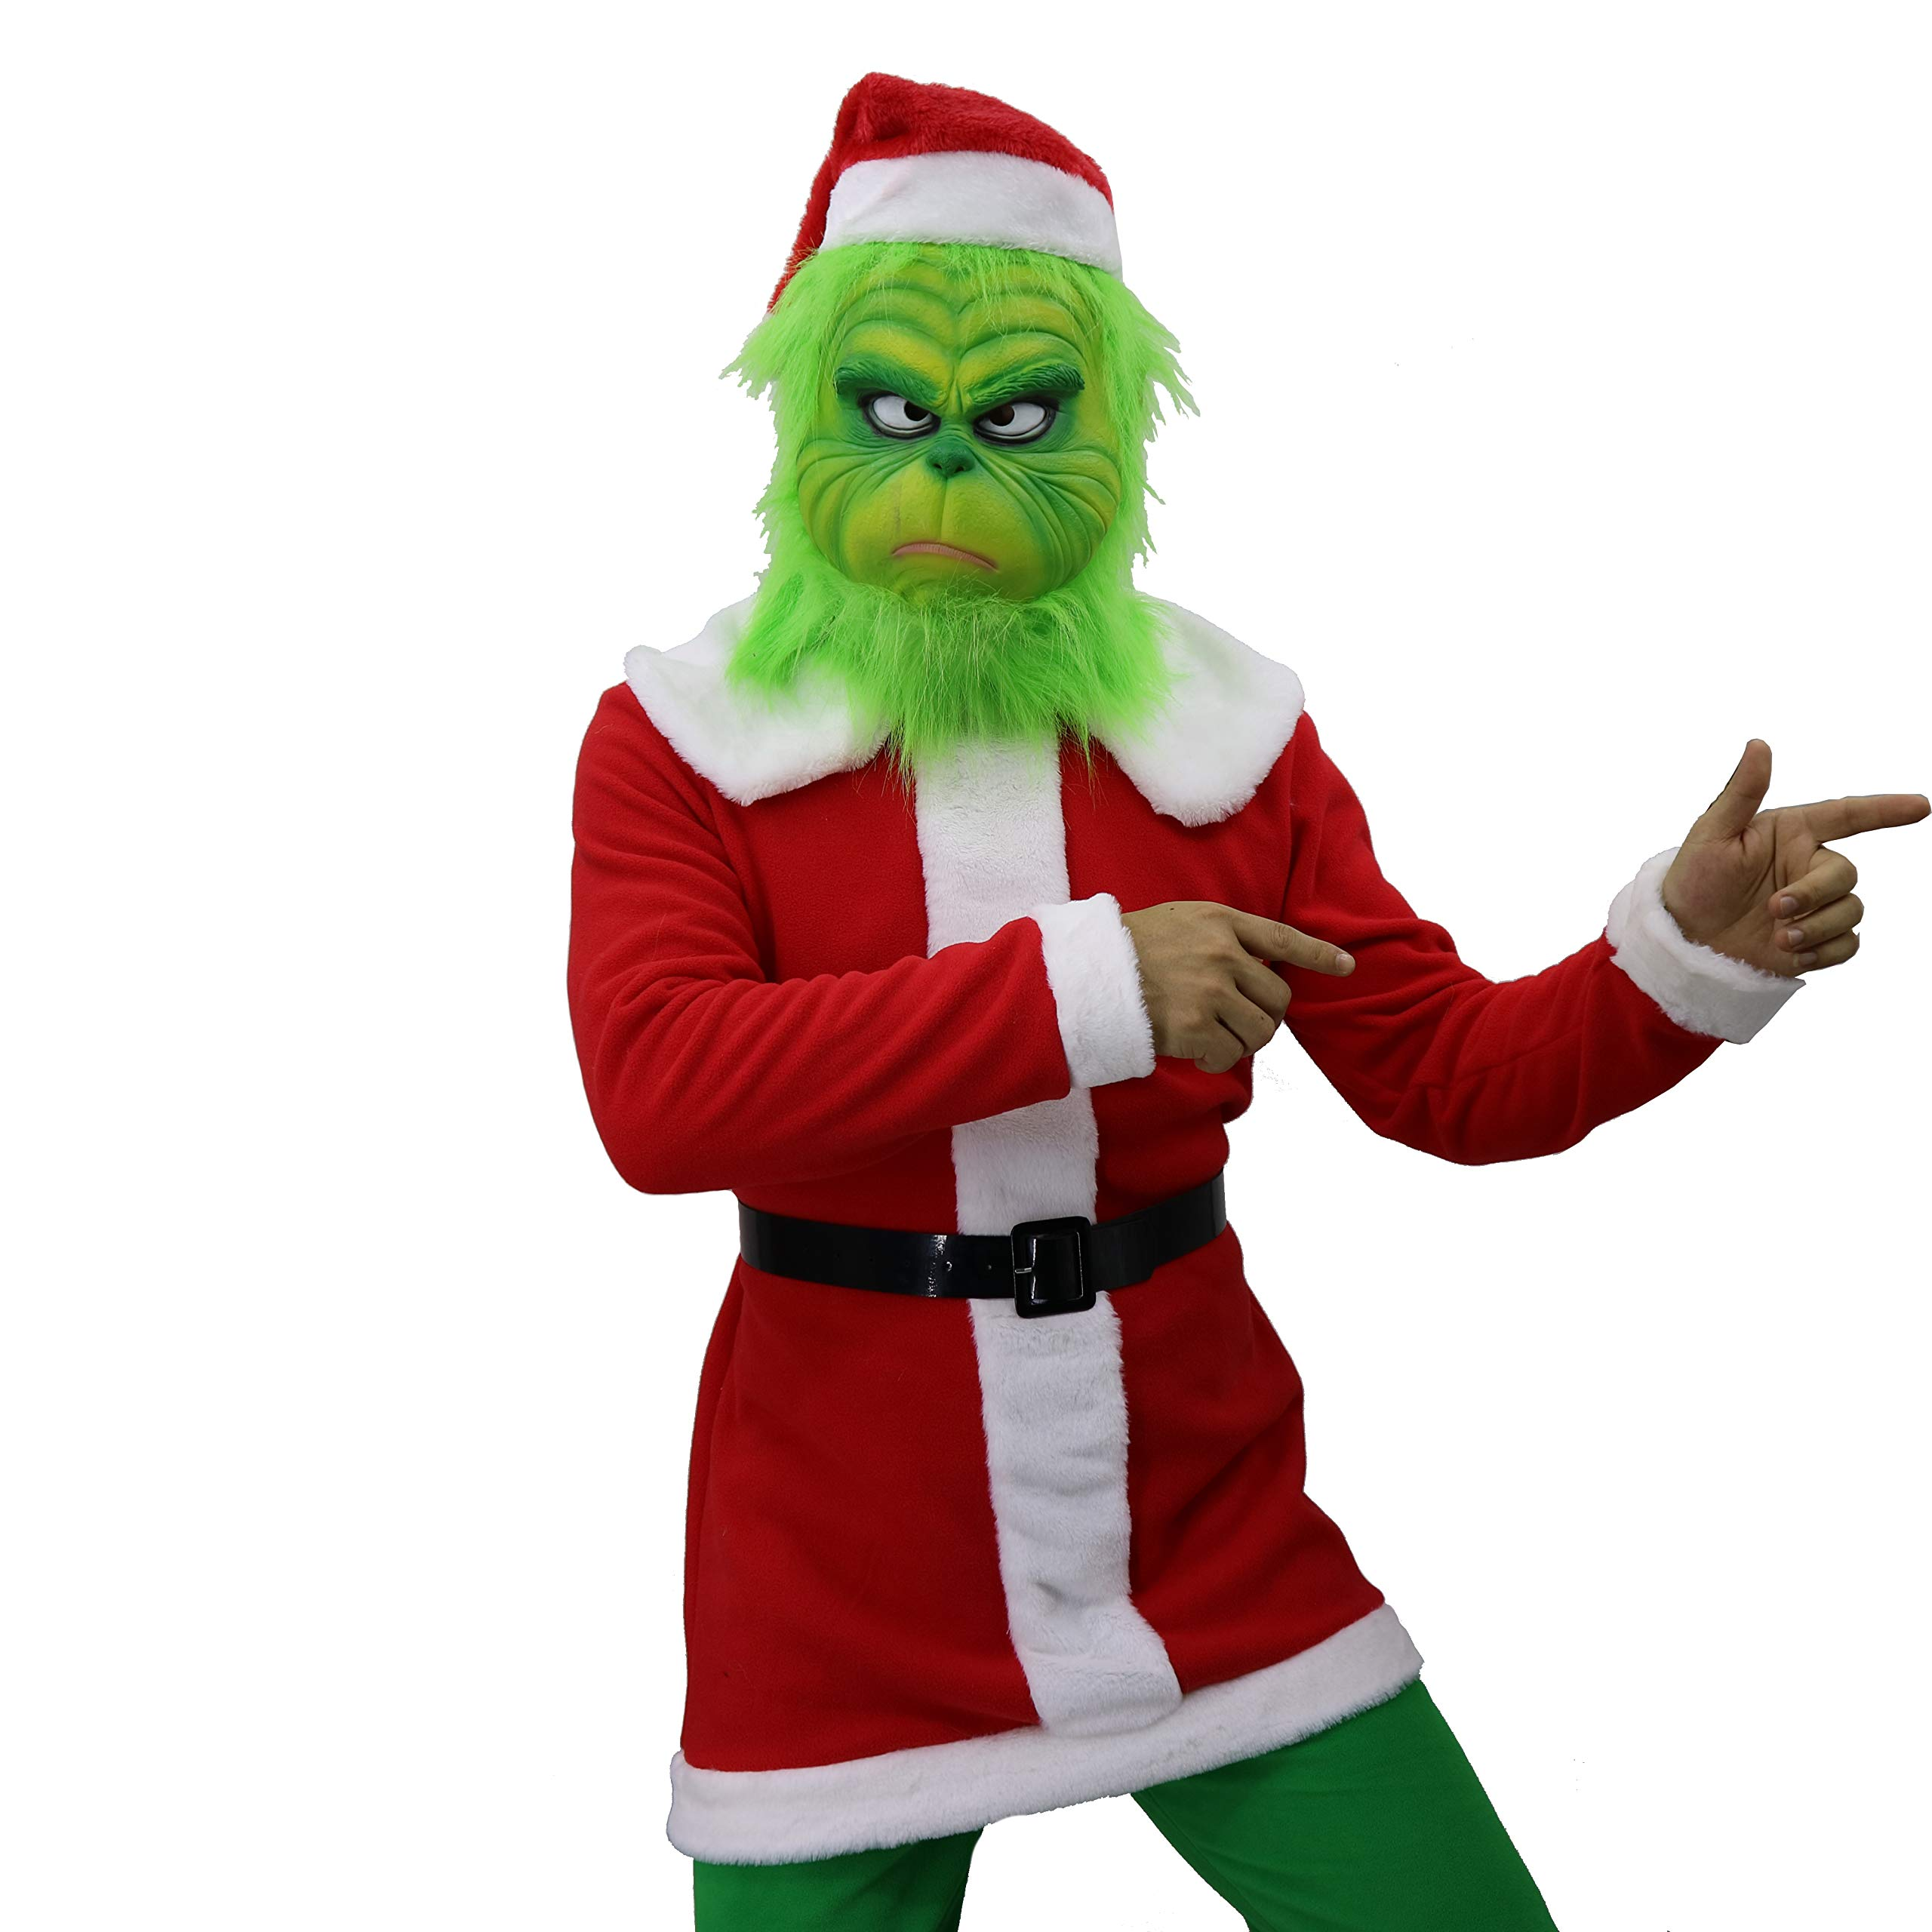 QIKI Grinch Costume Christmas Cosplay Grinch Latex Mask + Christmas hat + Christmas Outfit +Belt + Green Gloves (B, Medium)